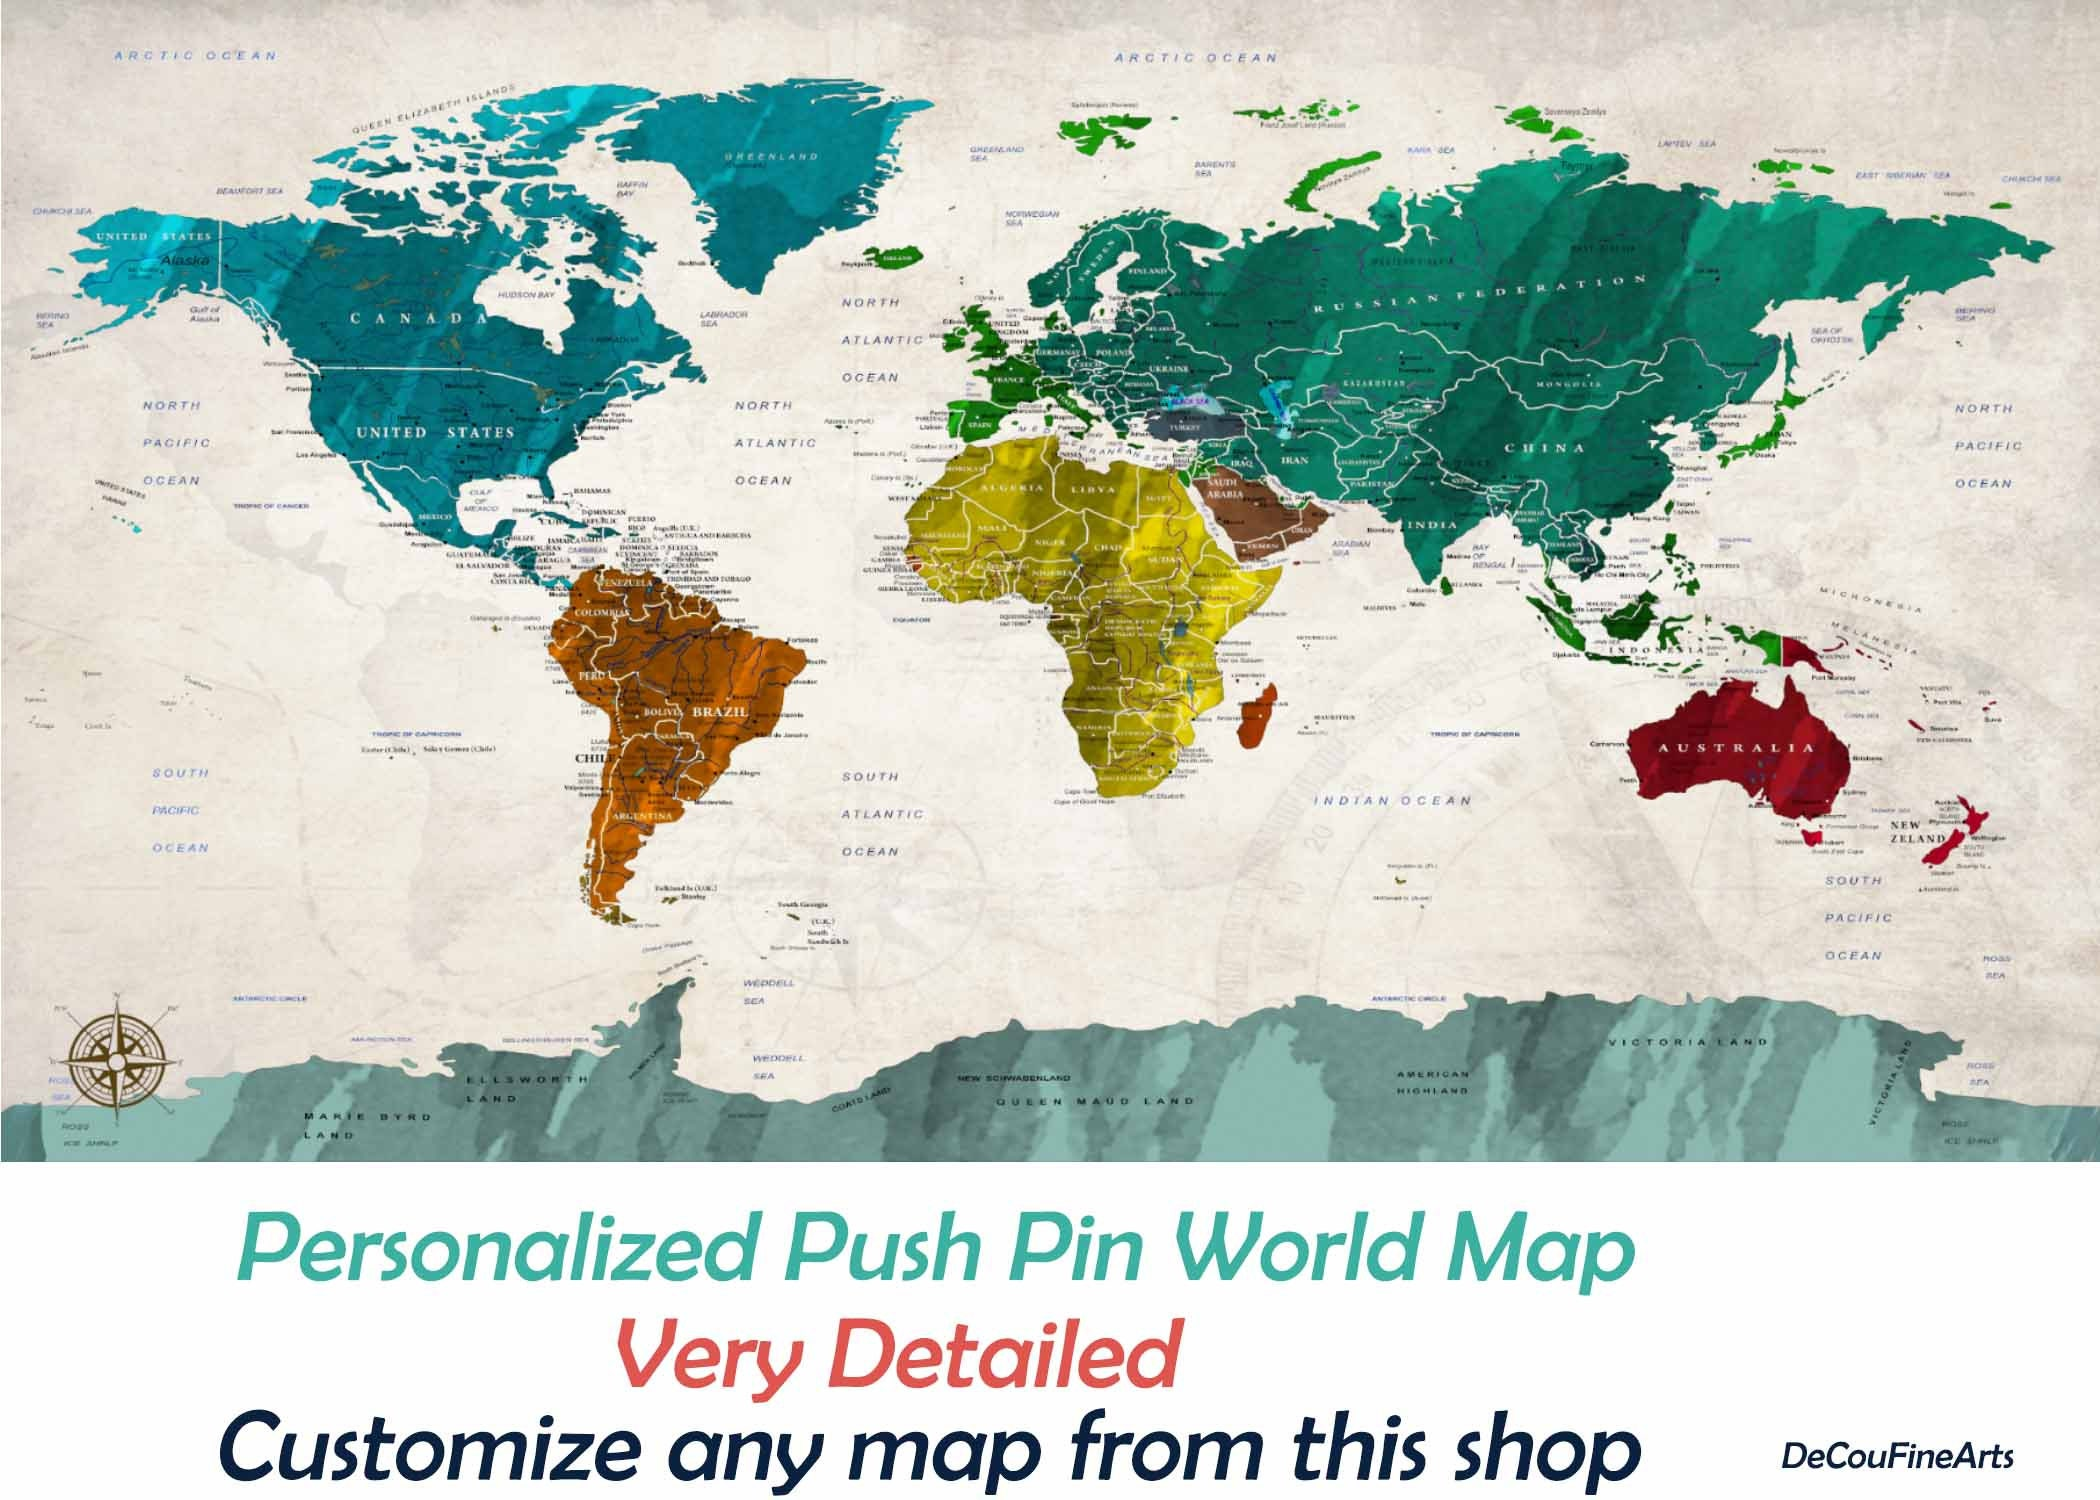 World mappush pin world mapdetailed world mapworld map canvas world mappush pin world mapdetailed world mapworld map canvasworld map artpush pin map arttravel mappush pin mapworld map printmap gumiabroncs Images